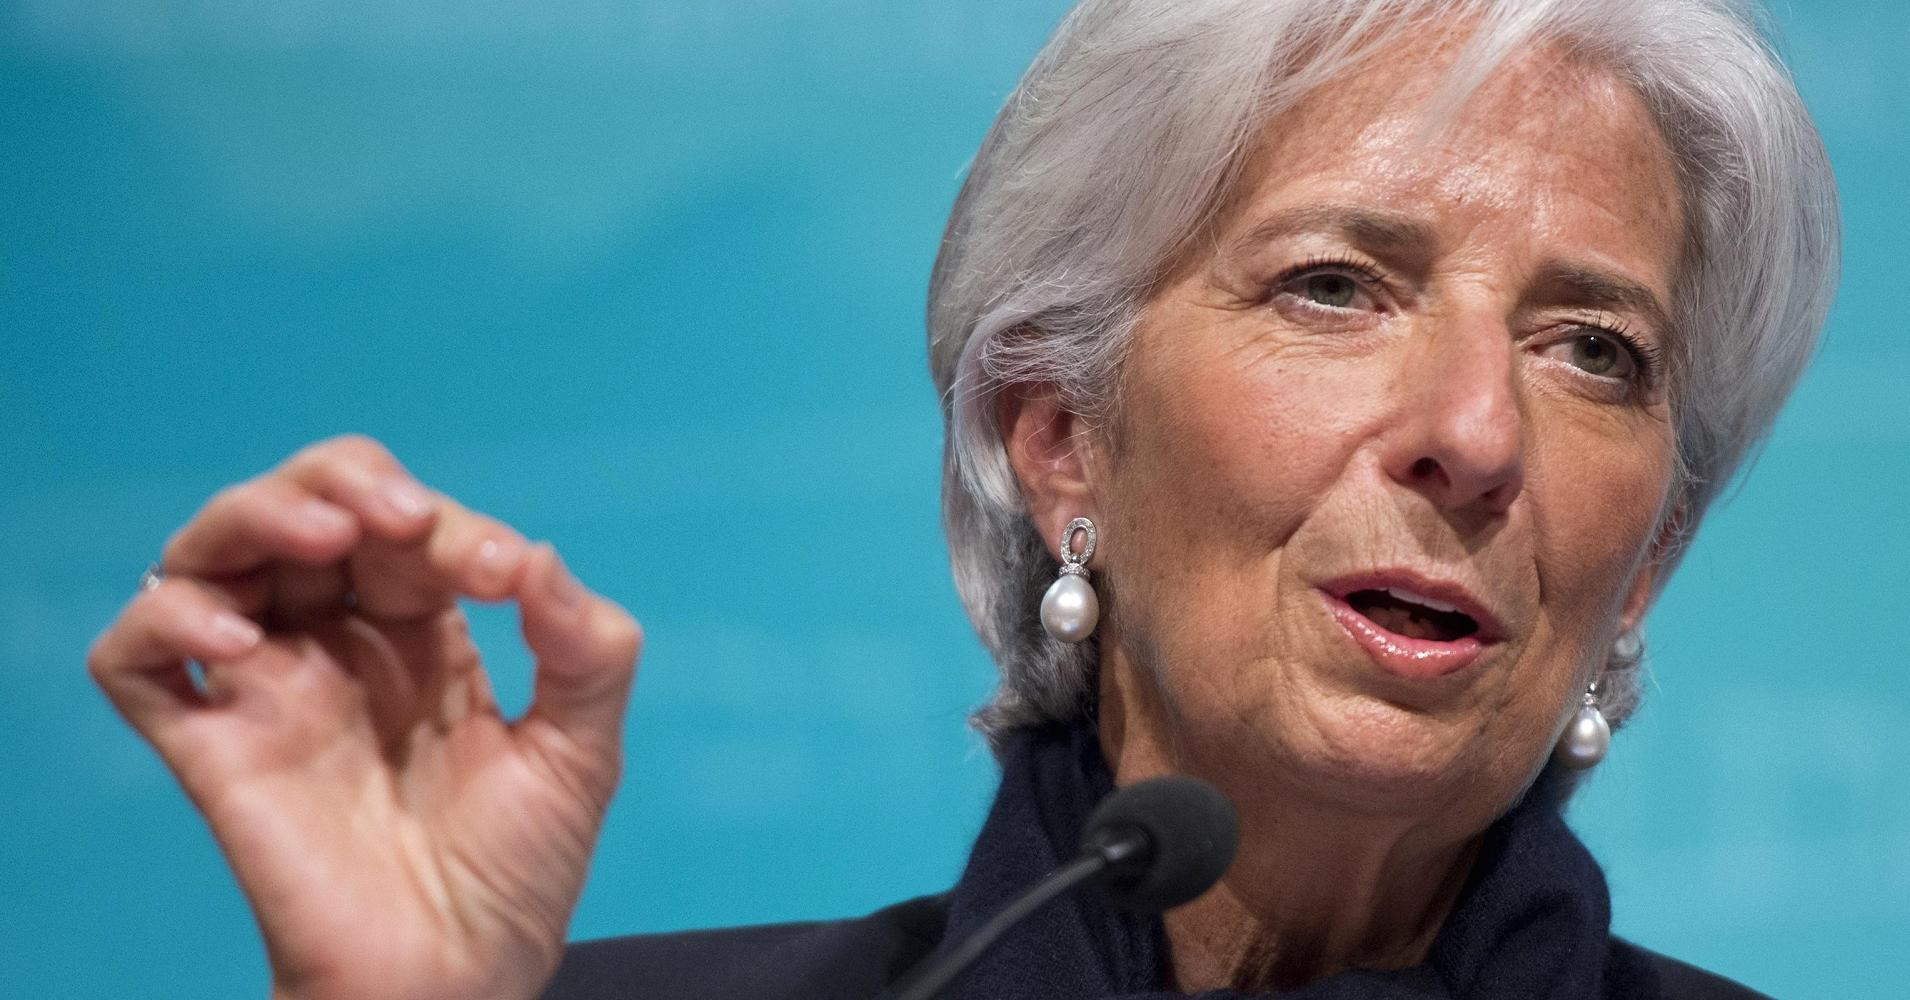 IMF's Lagarde warns Ukraine it could lose vital aid